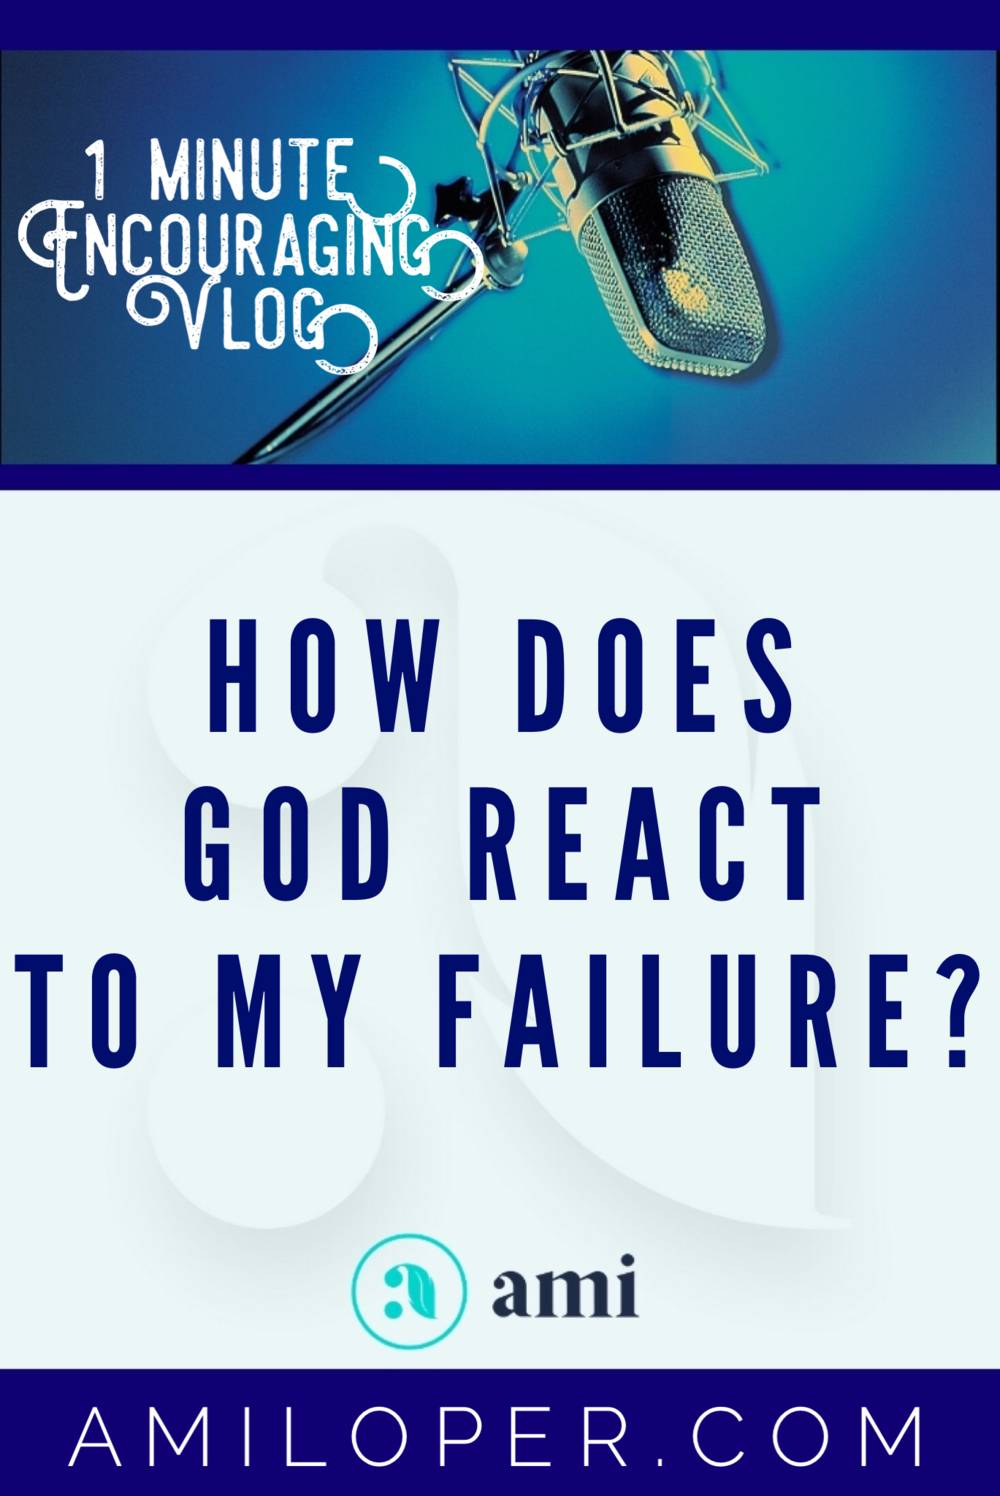 God's reaction to my failure often surprises me. He doesn't react like humans do. As soon as repentance takes place, He is ready to move forward with me! There is no protracted guilt trip or silent treatment. He forgives and moves forward. #Failure #Vlog